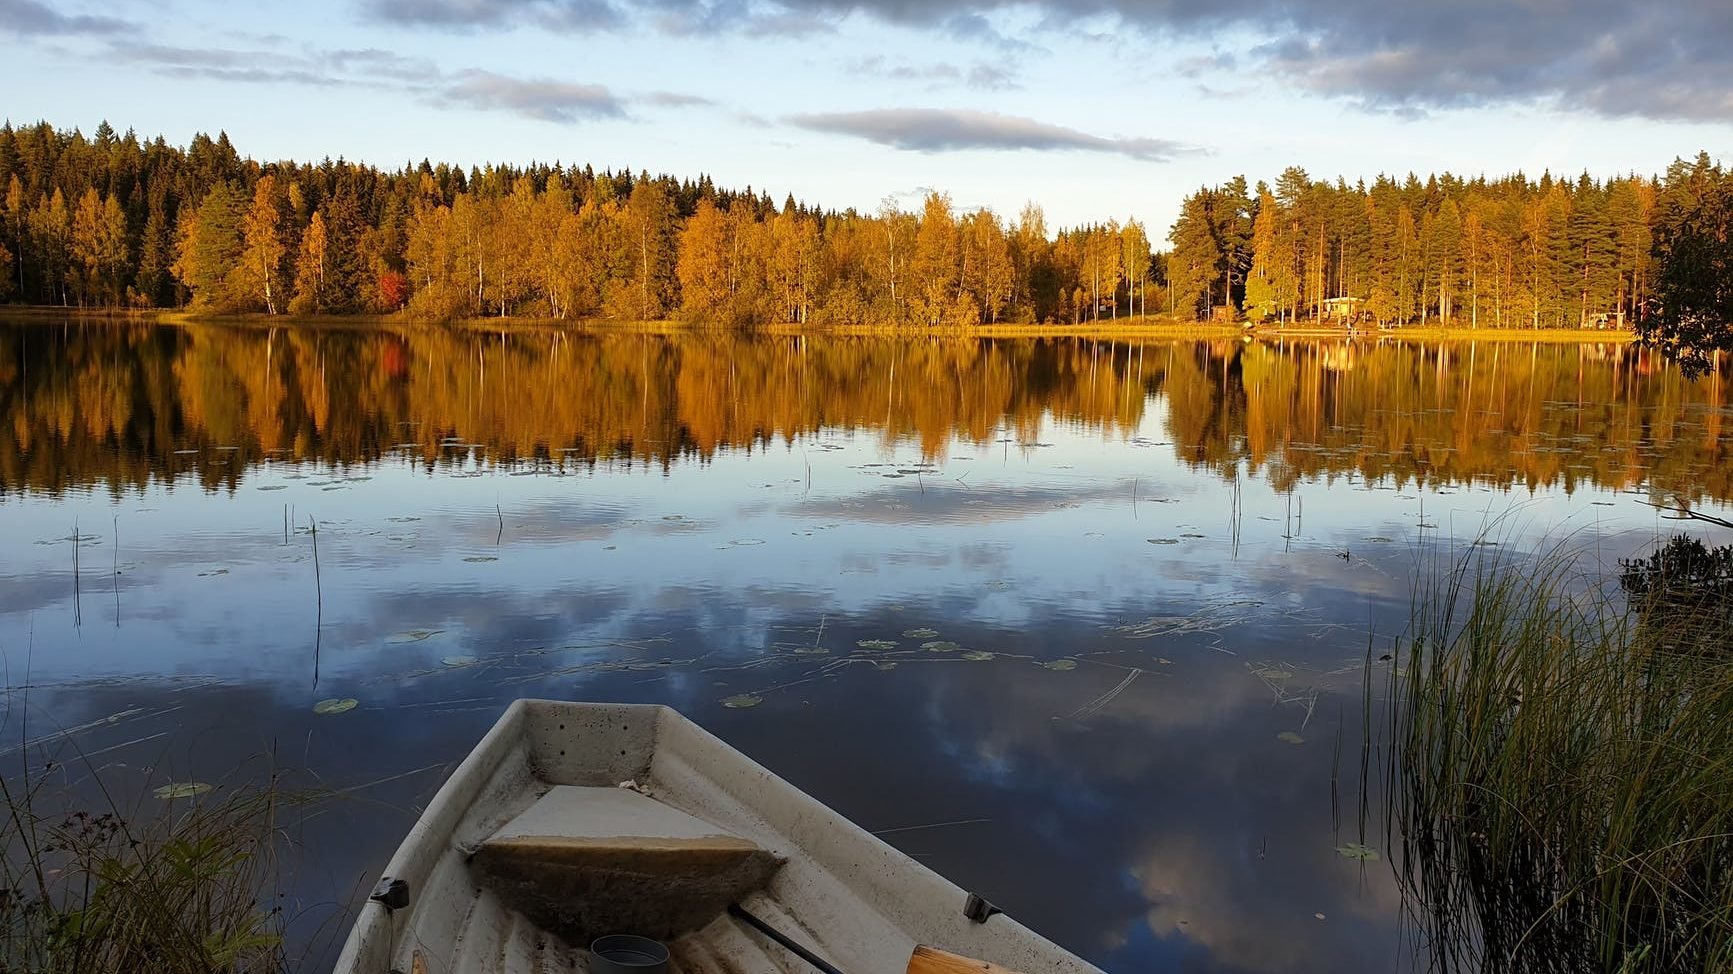 white boat on lake near green trees under white clouds